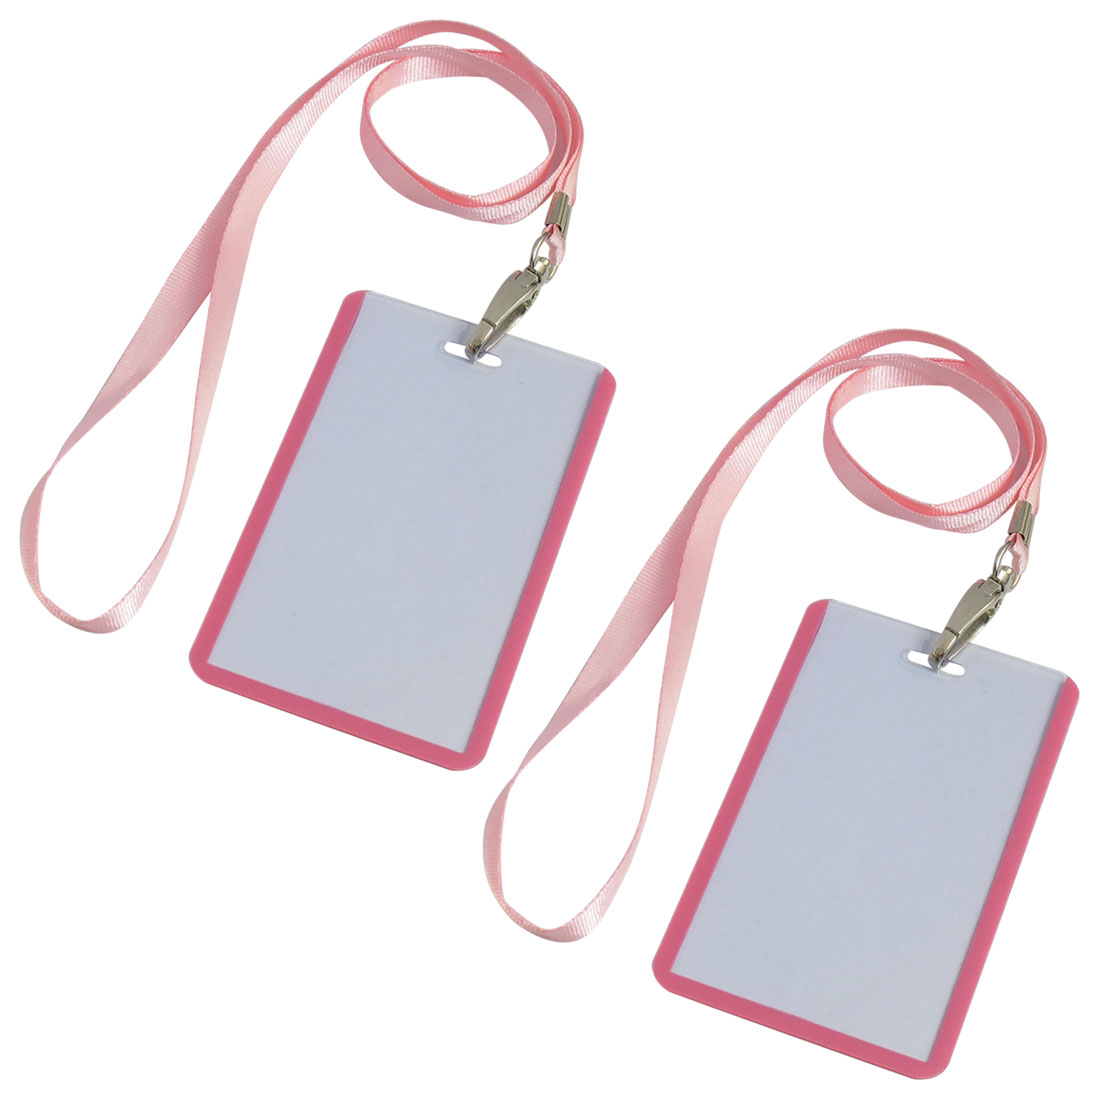 2 Pcs School Office Pink Lanyard Vertical B8 ID Name Badge Card Holders